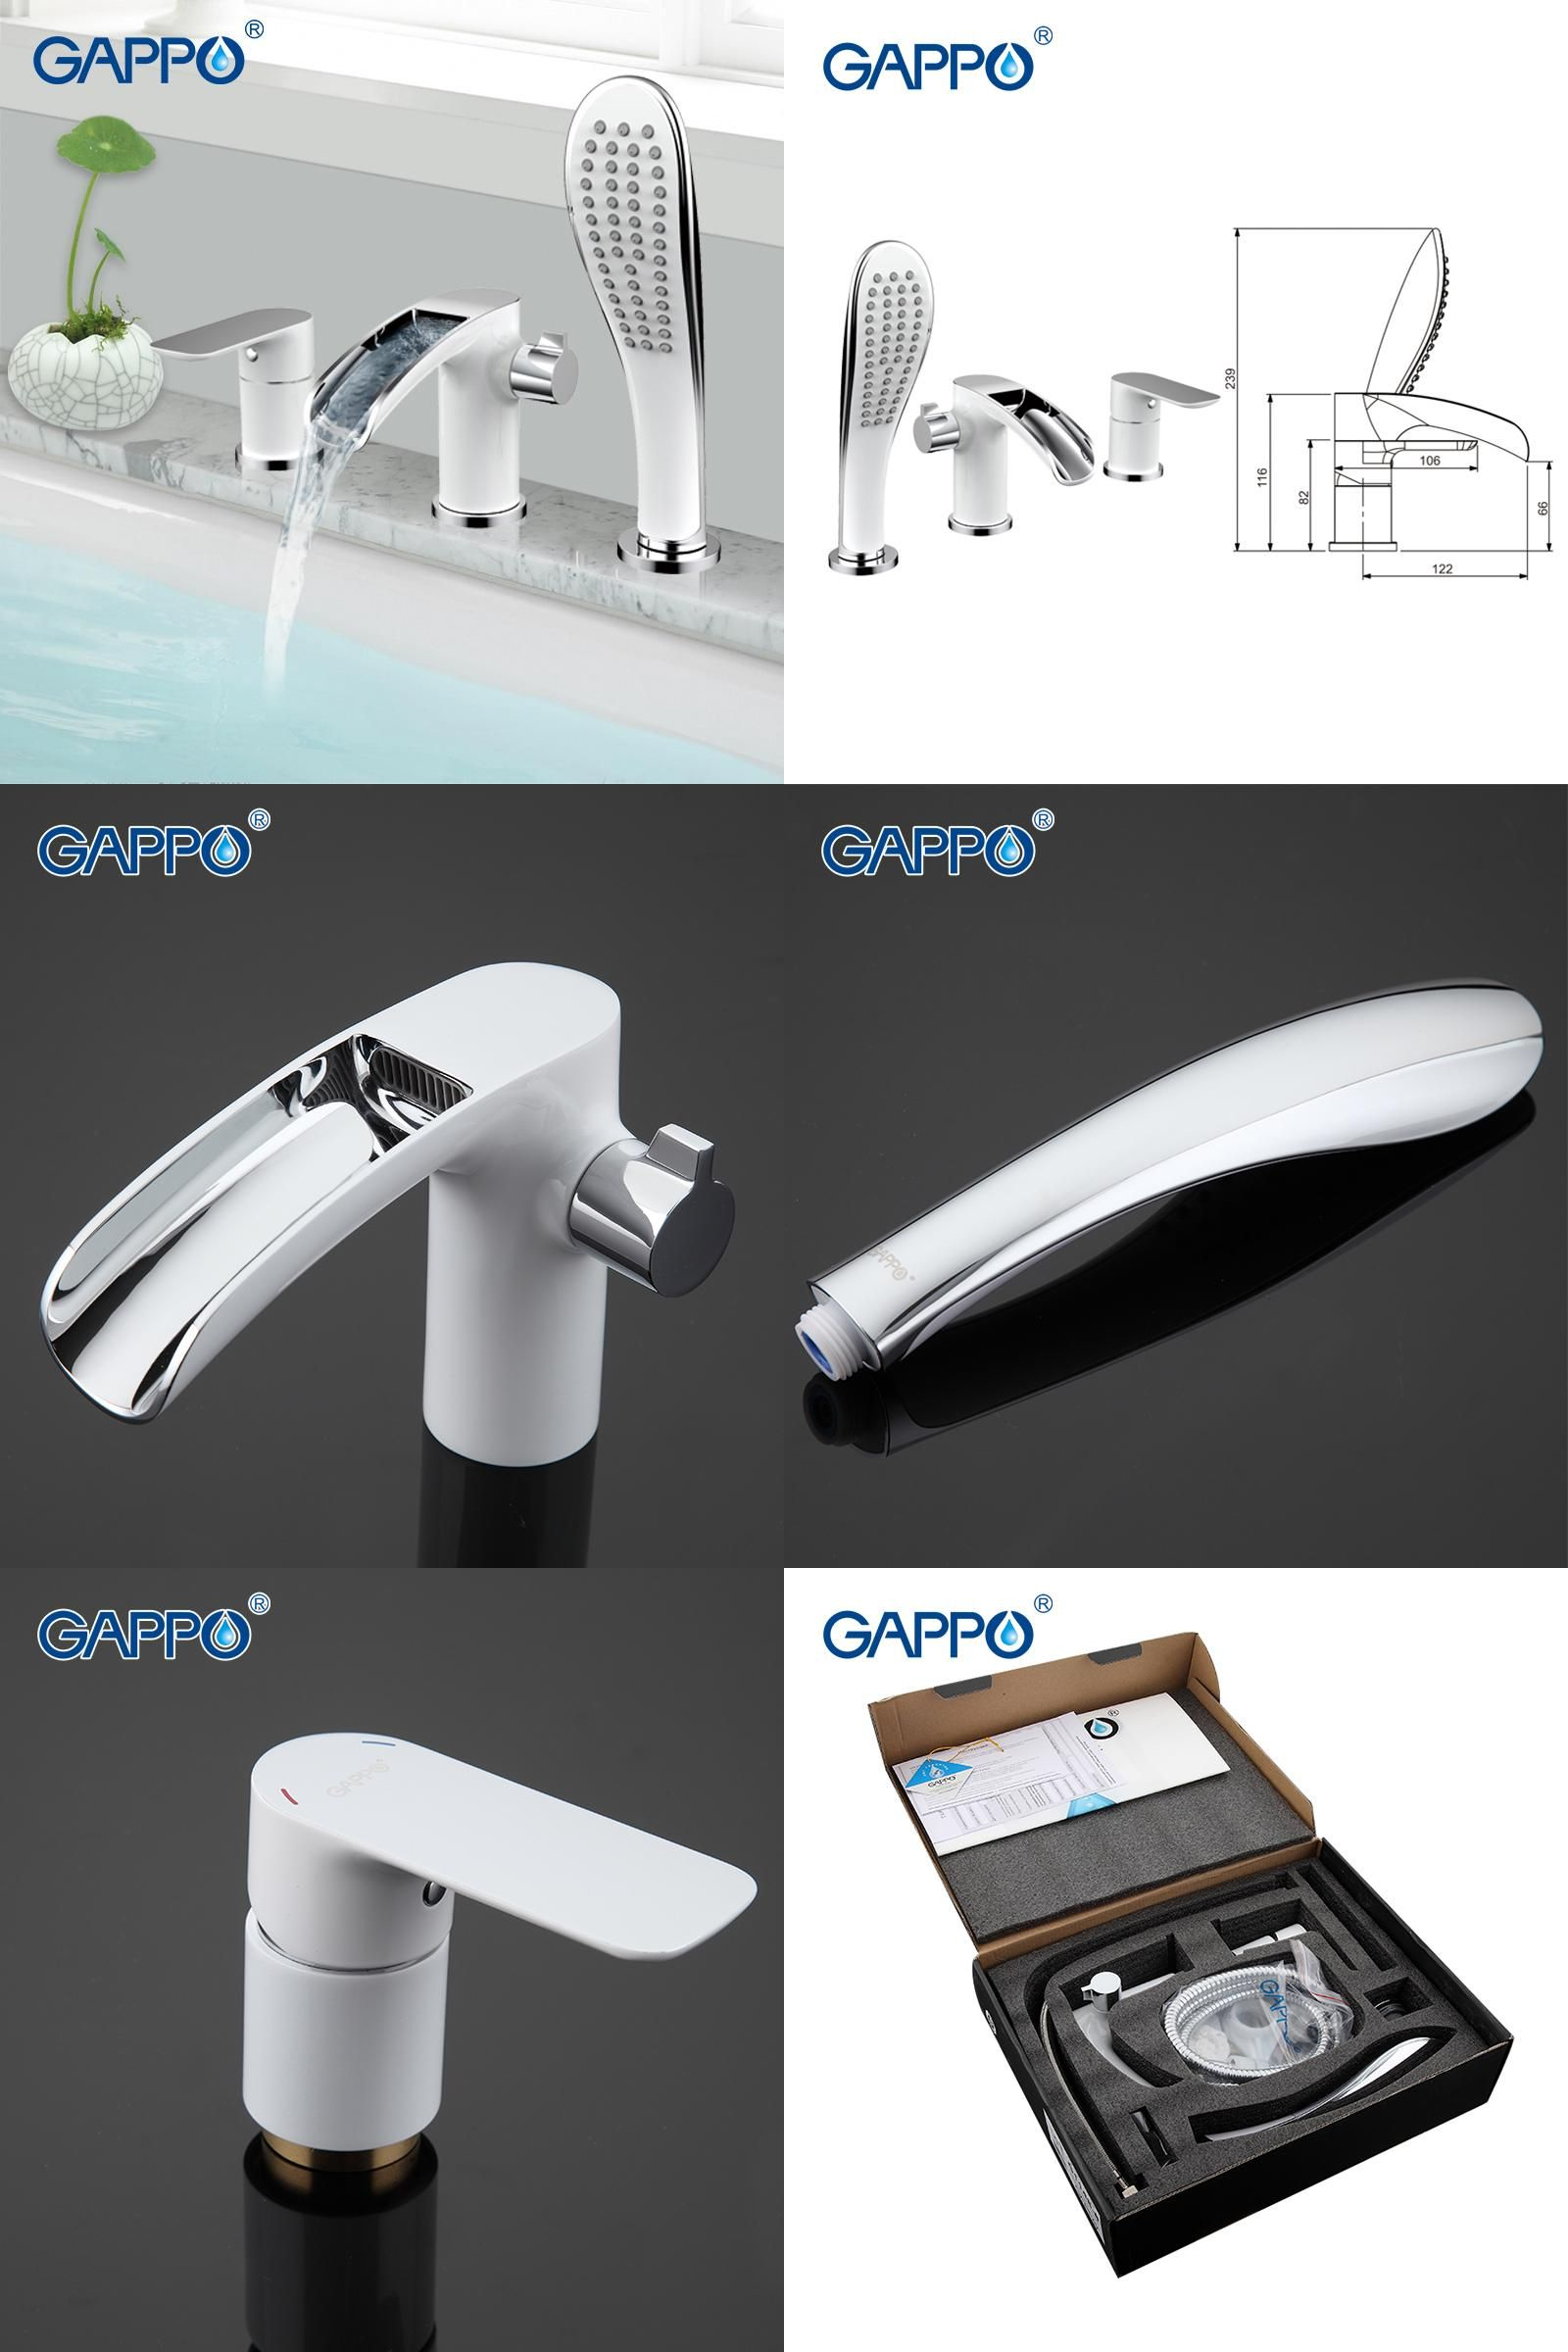 Visit to Buy] GAPPO1set bathroom shower fixture Bath Shower Faucet ...